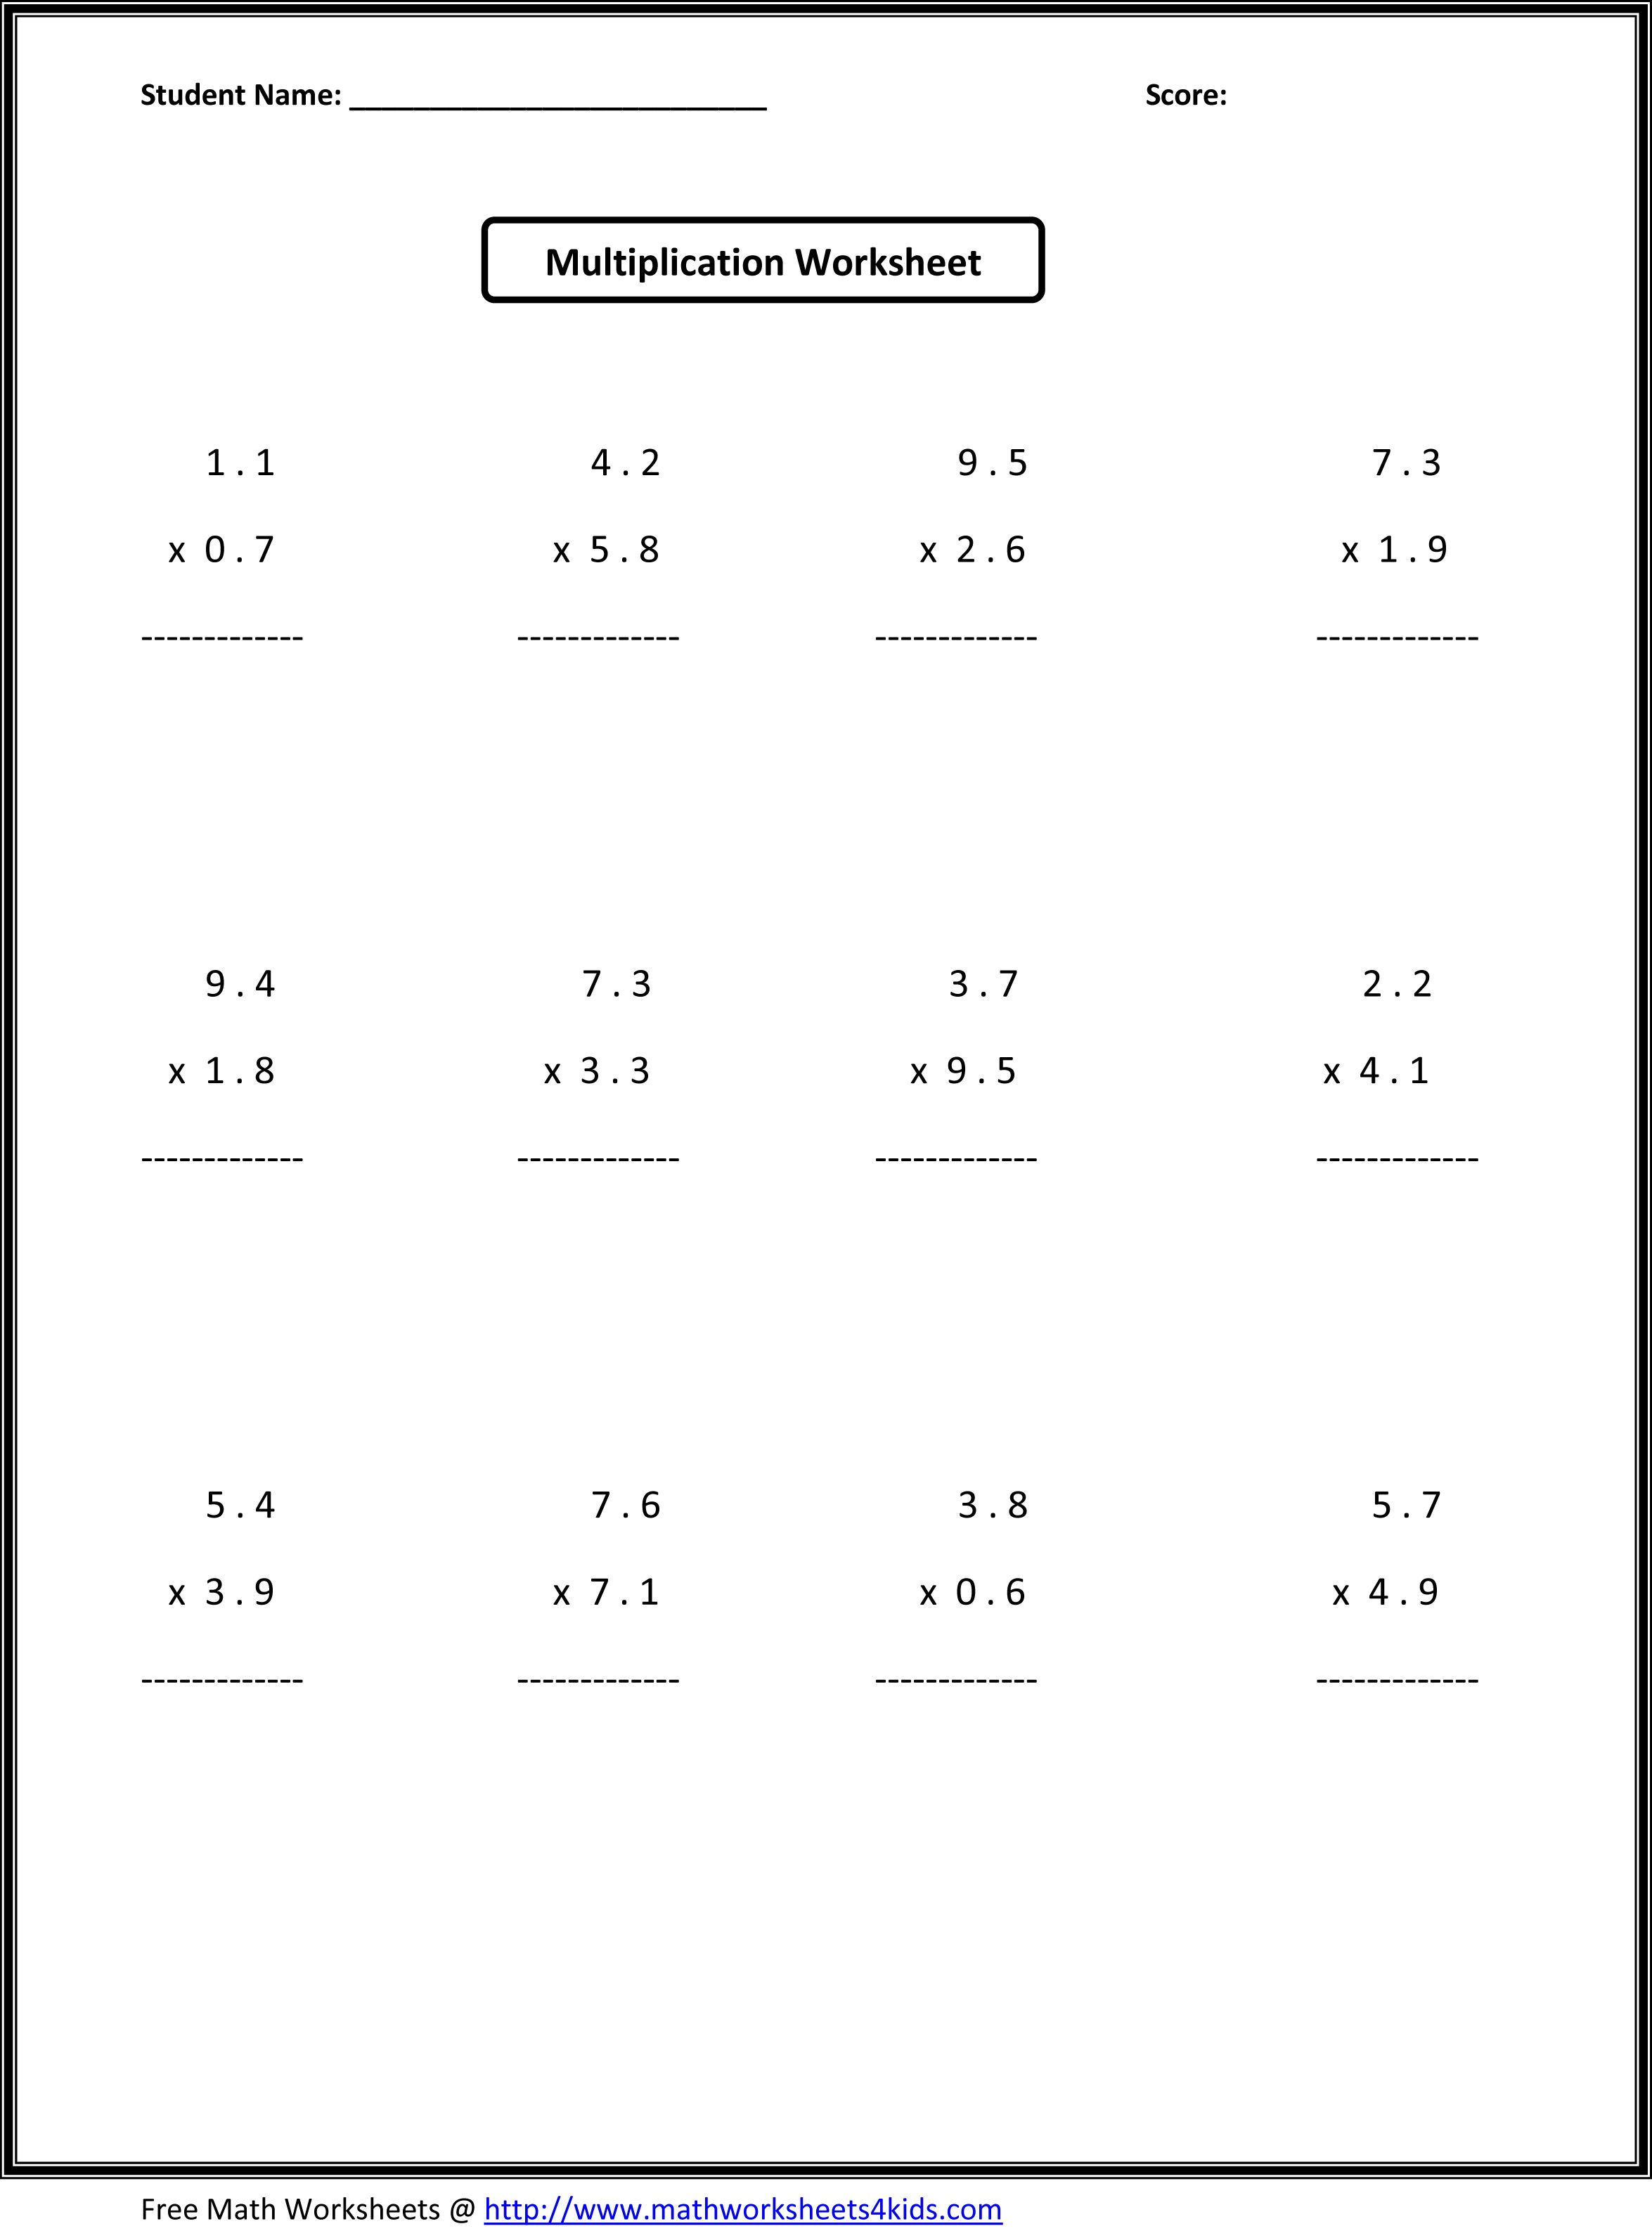 7Th Grade Math Worksheets With Answer Key Free Worksheets Library – Free Printable Math Worksheets with Answer Key